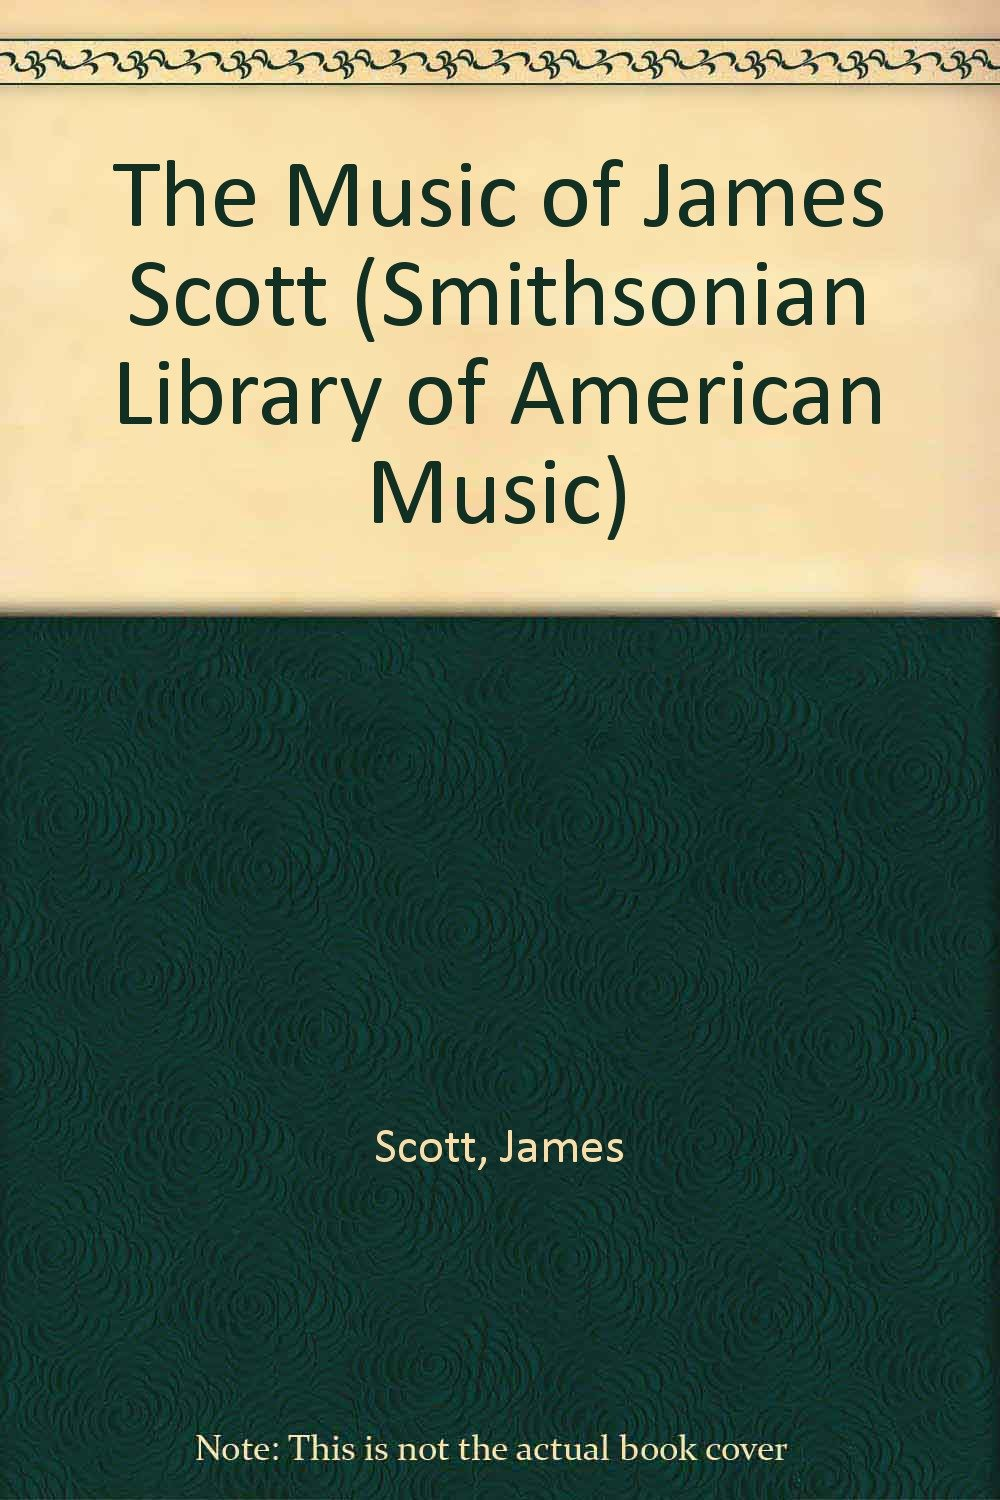 the music of james scott smithsonian library of american music